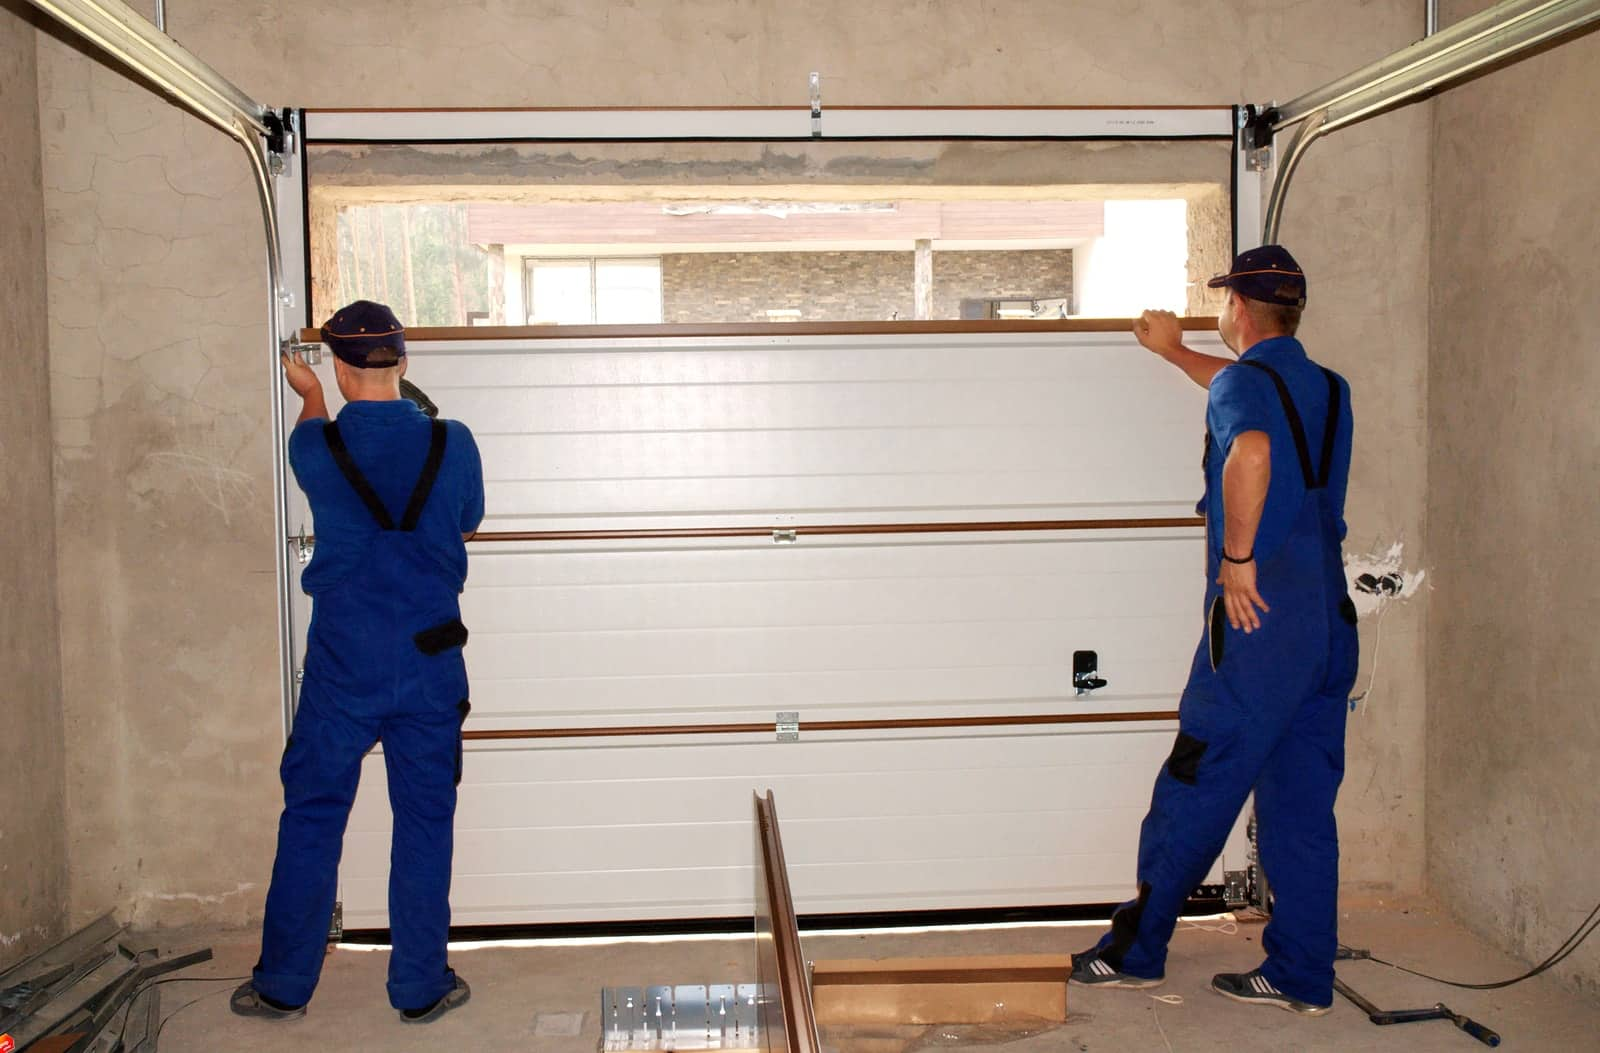 How Much Does a Garage Door Repair Typically Cost